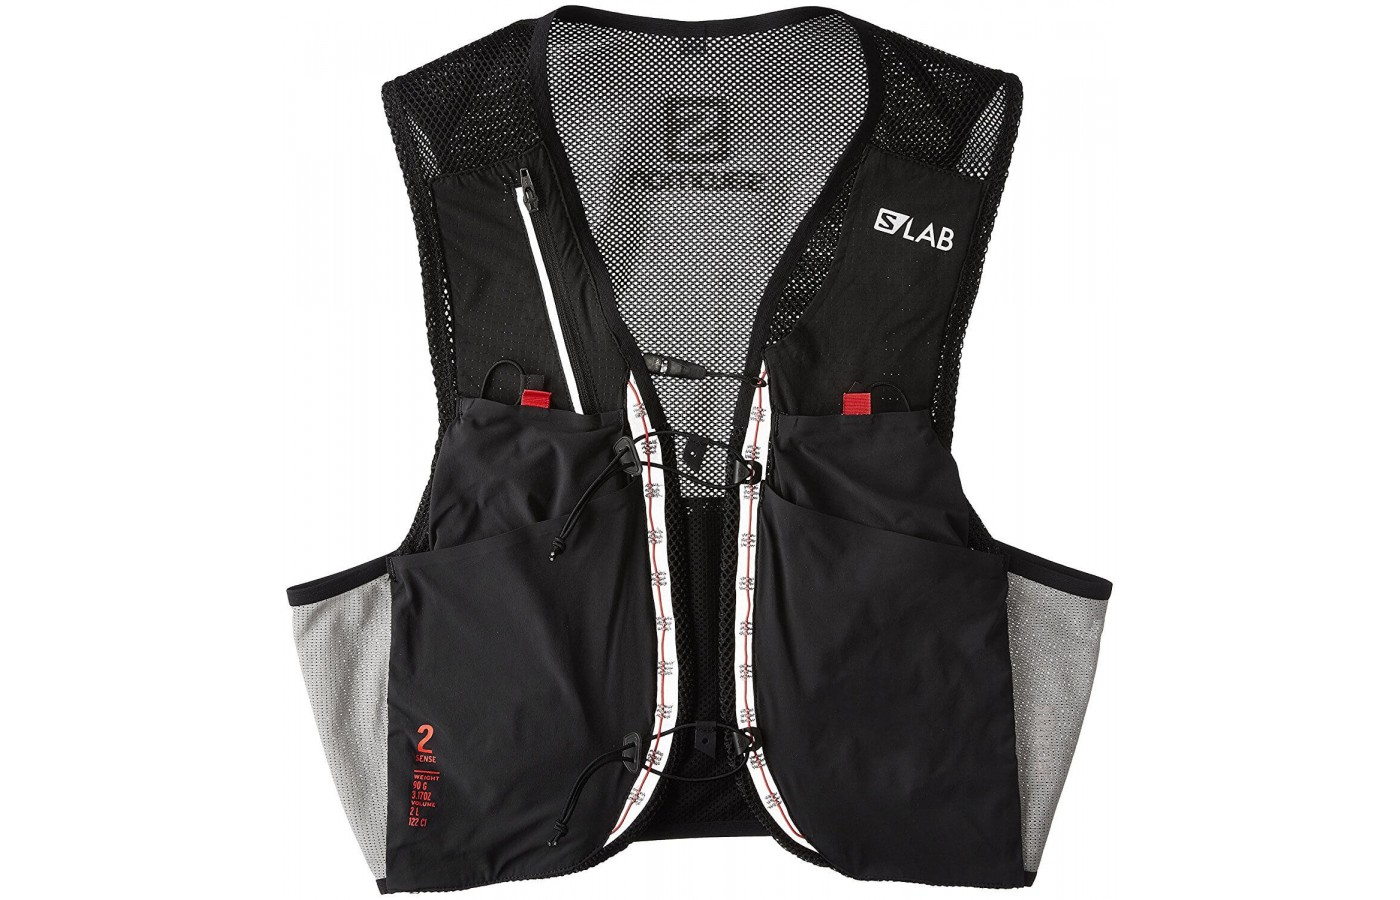 Salomon S-Lab Sense 2 Vest is a minimalist lightweight hydration vest alternative